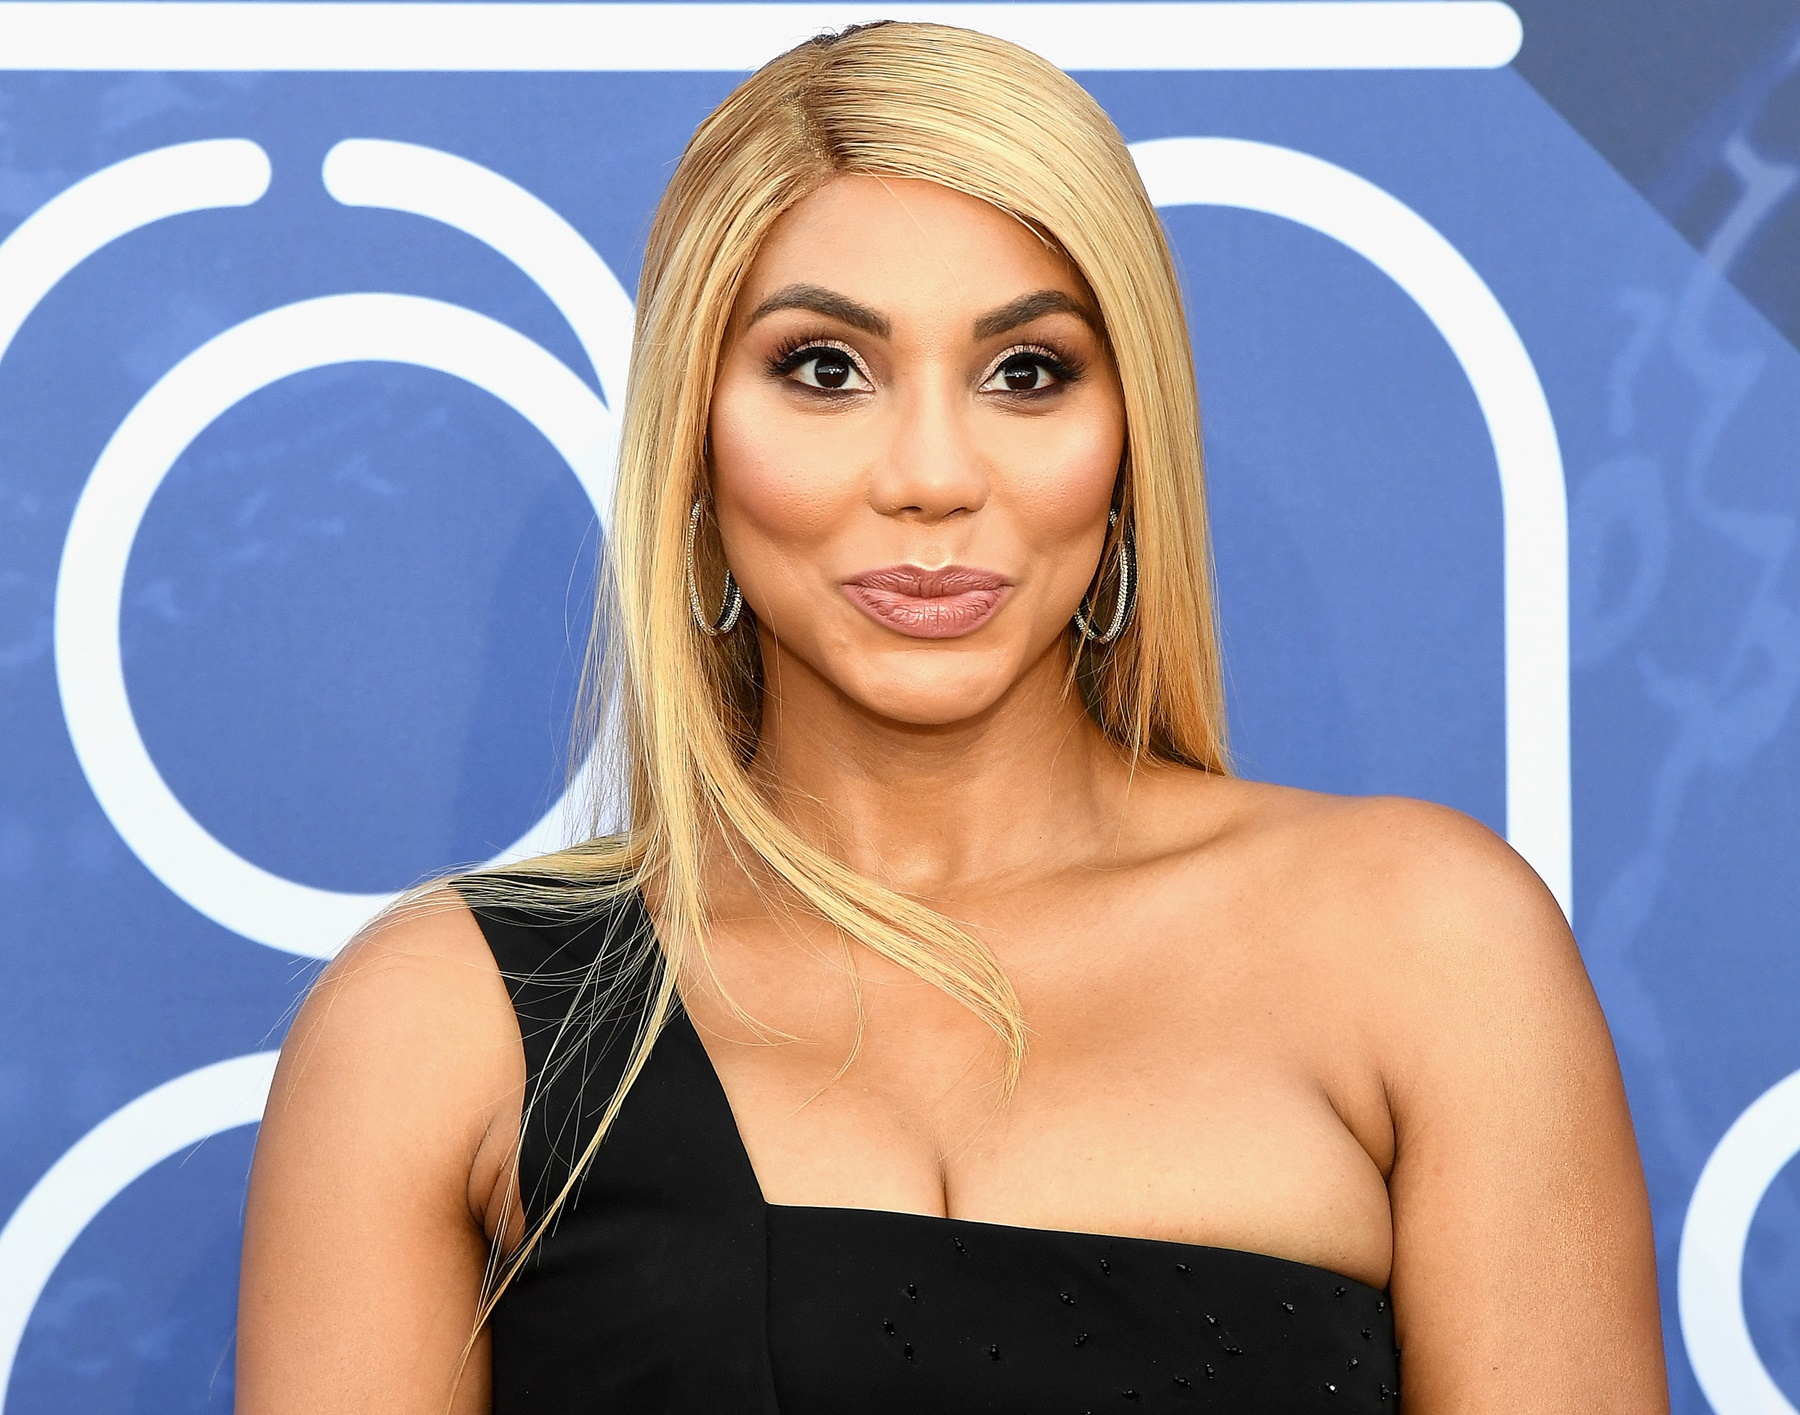 tamar-braxton-blows-peoples-minds-in-a-red-latex-outfit-and-snatches-her-wig-off-on-stage